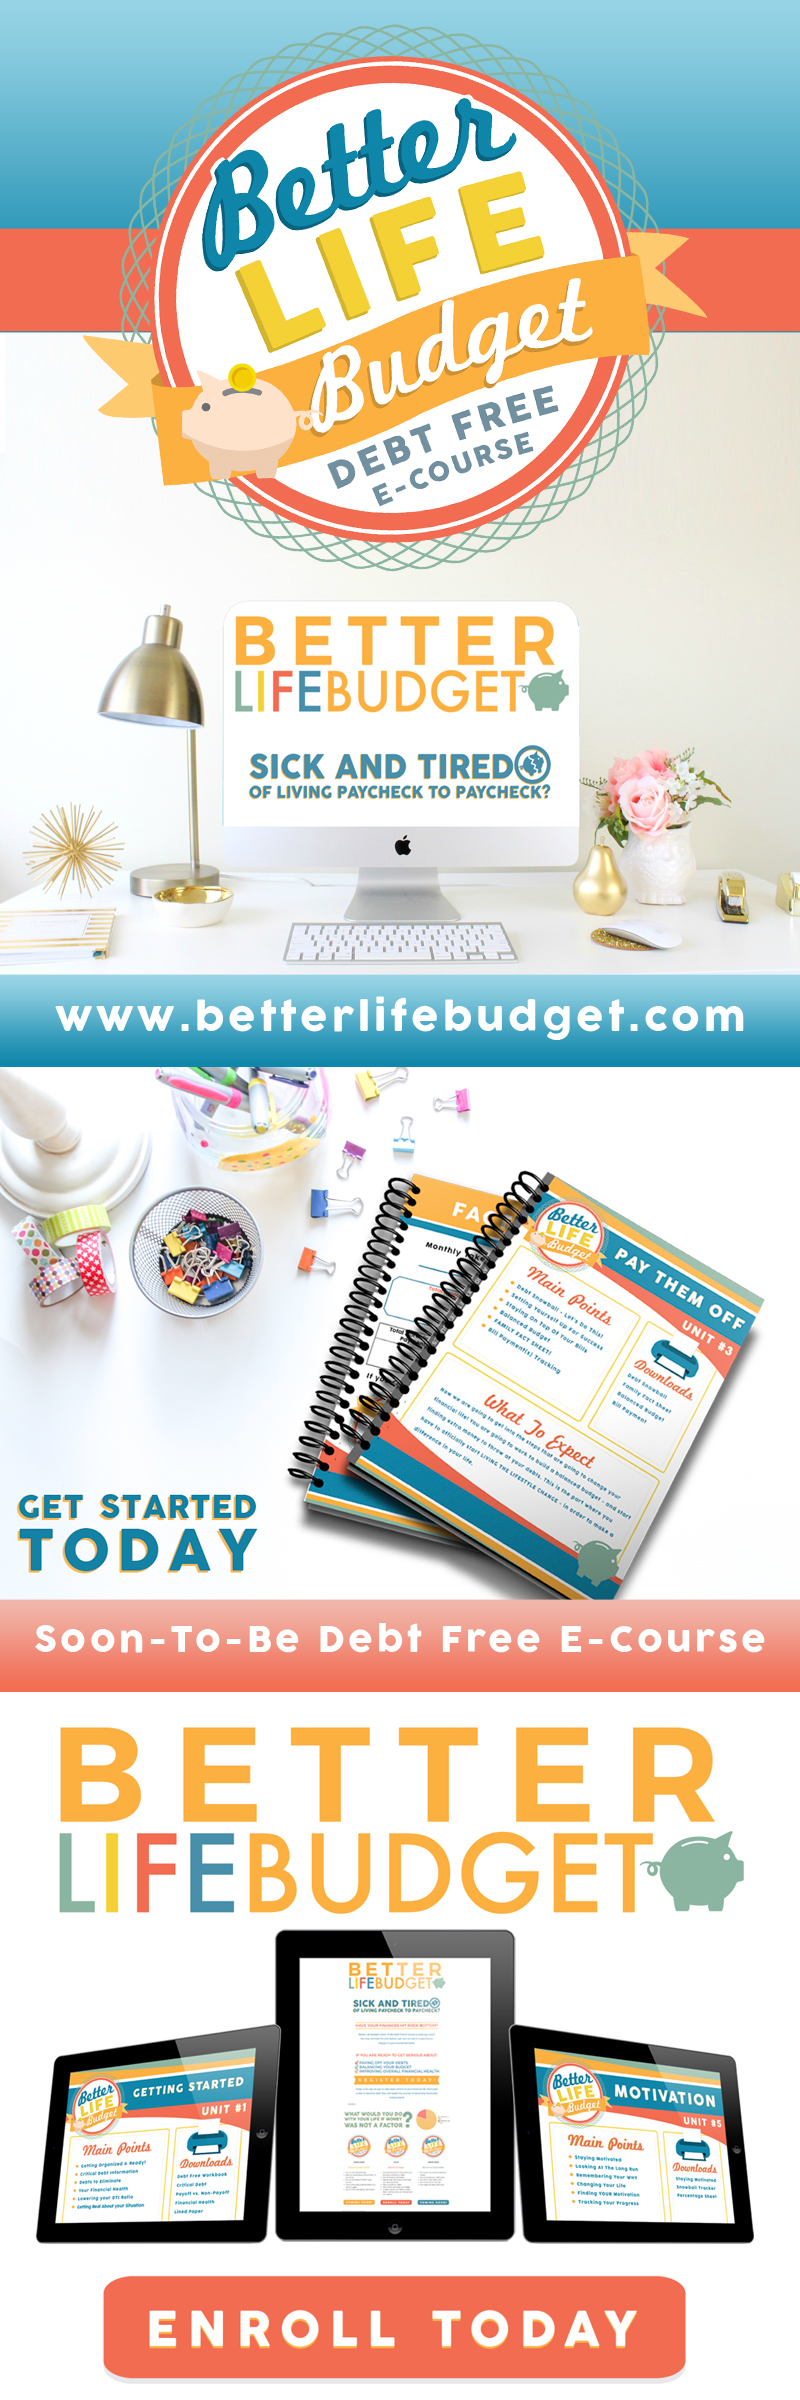 Better Life Budget Debt Free E-Course!!!